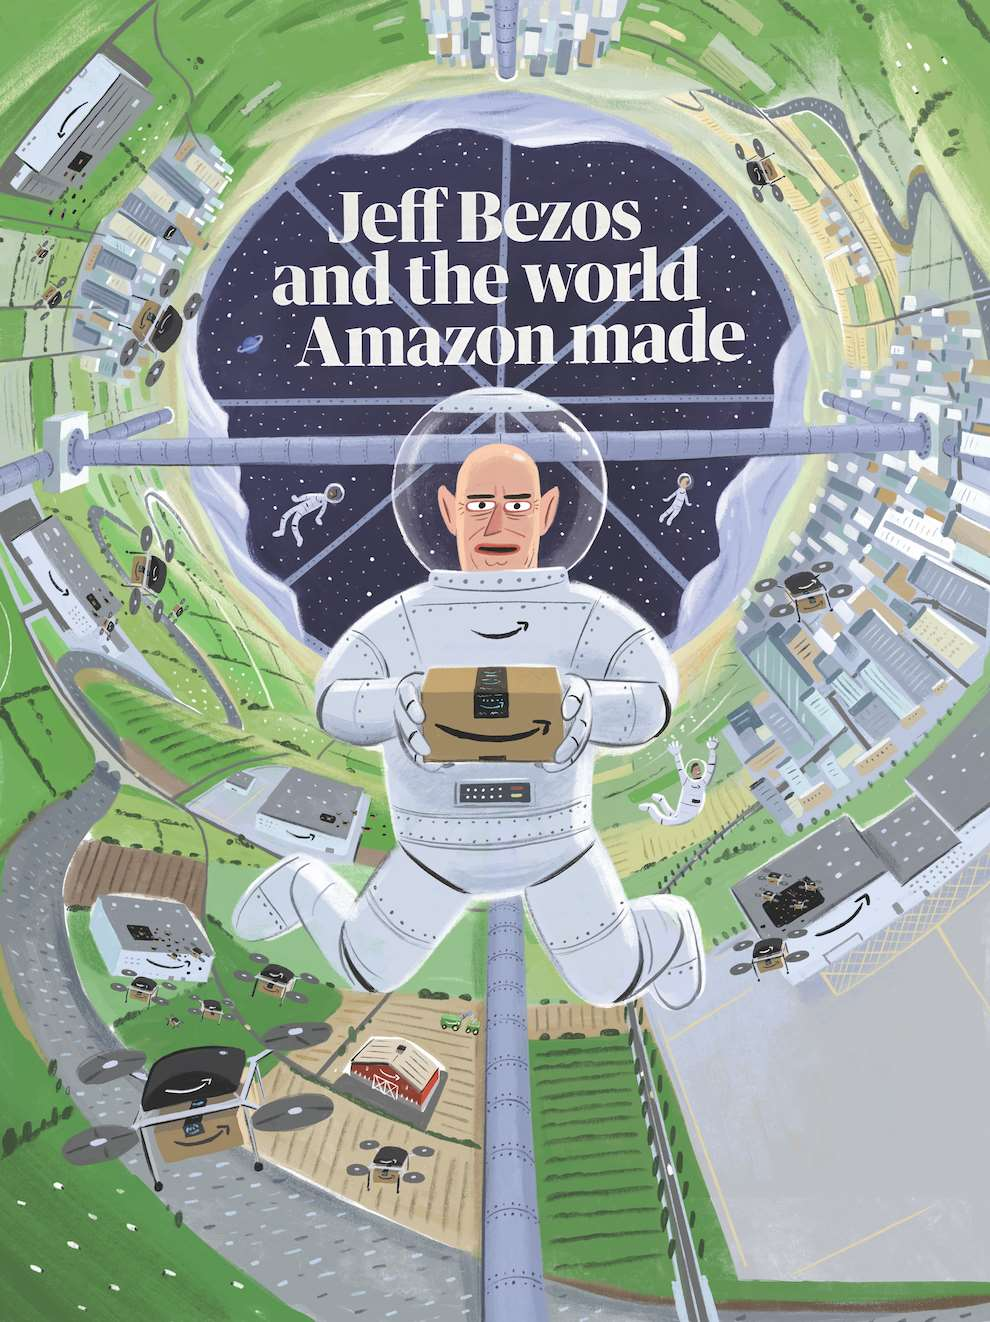 Stephen Collins, Painterly humoristic illustration of Jeff Bezos wearing a space suit and holding an amazon package